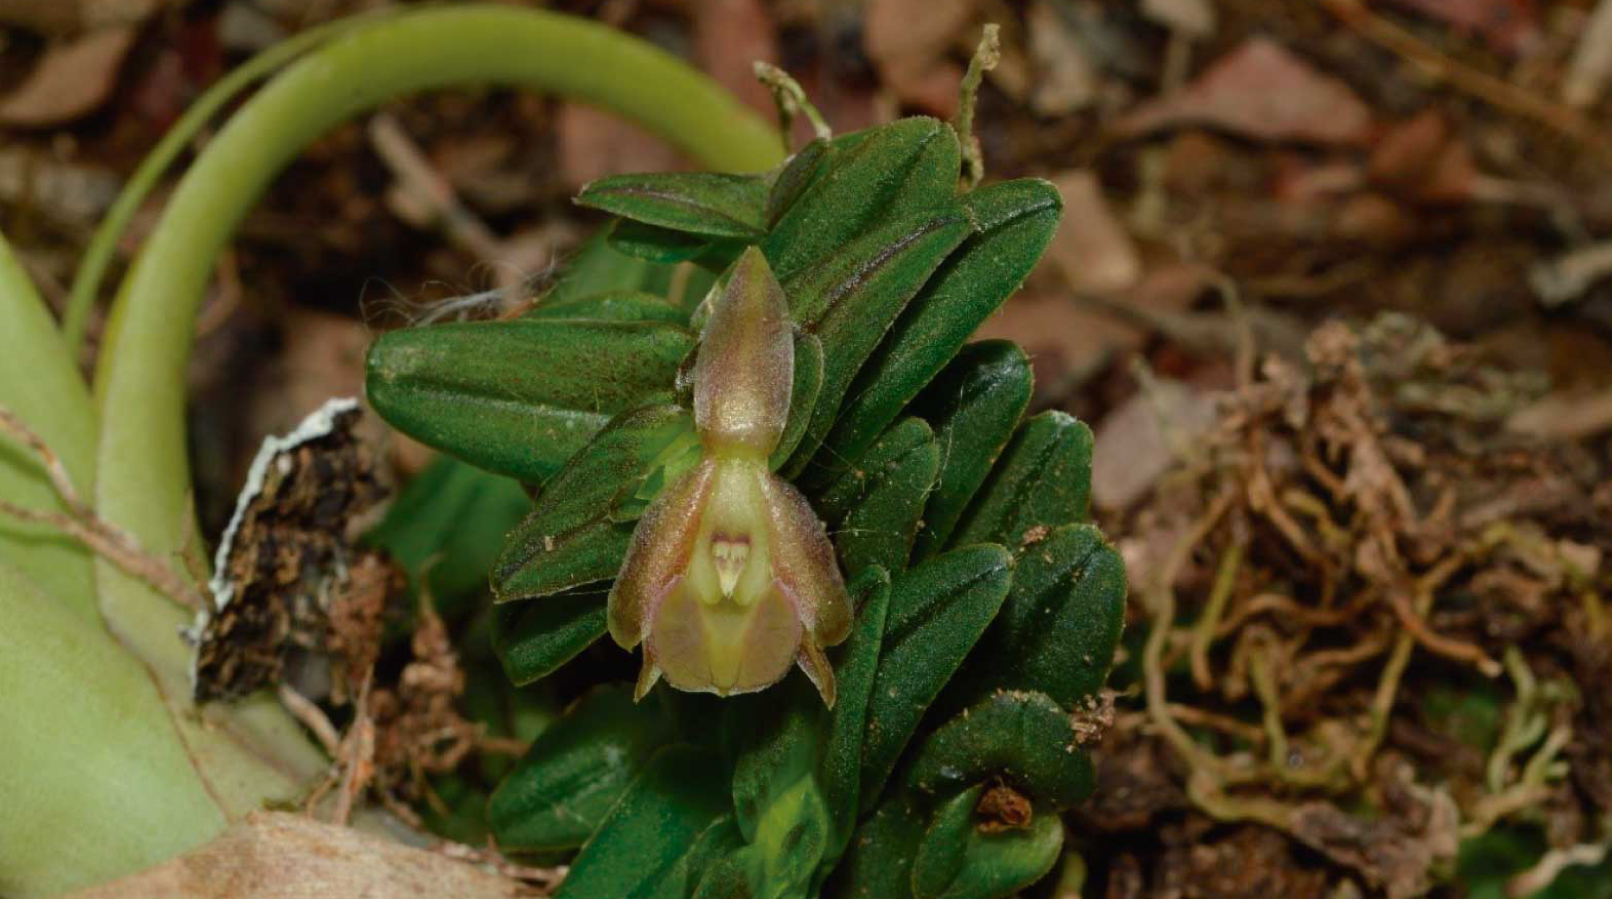 Nature gives us a new species of Orchid in Urabá!